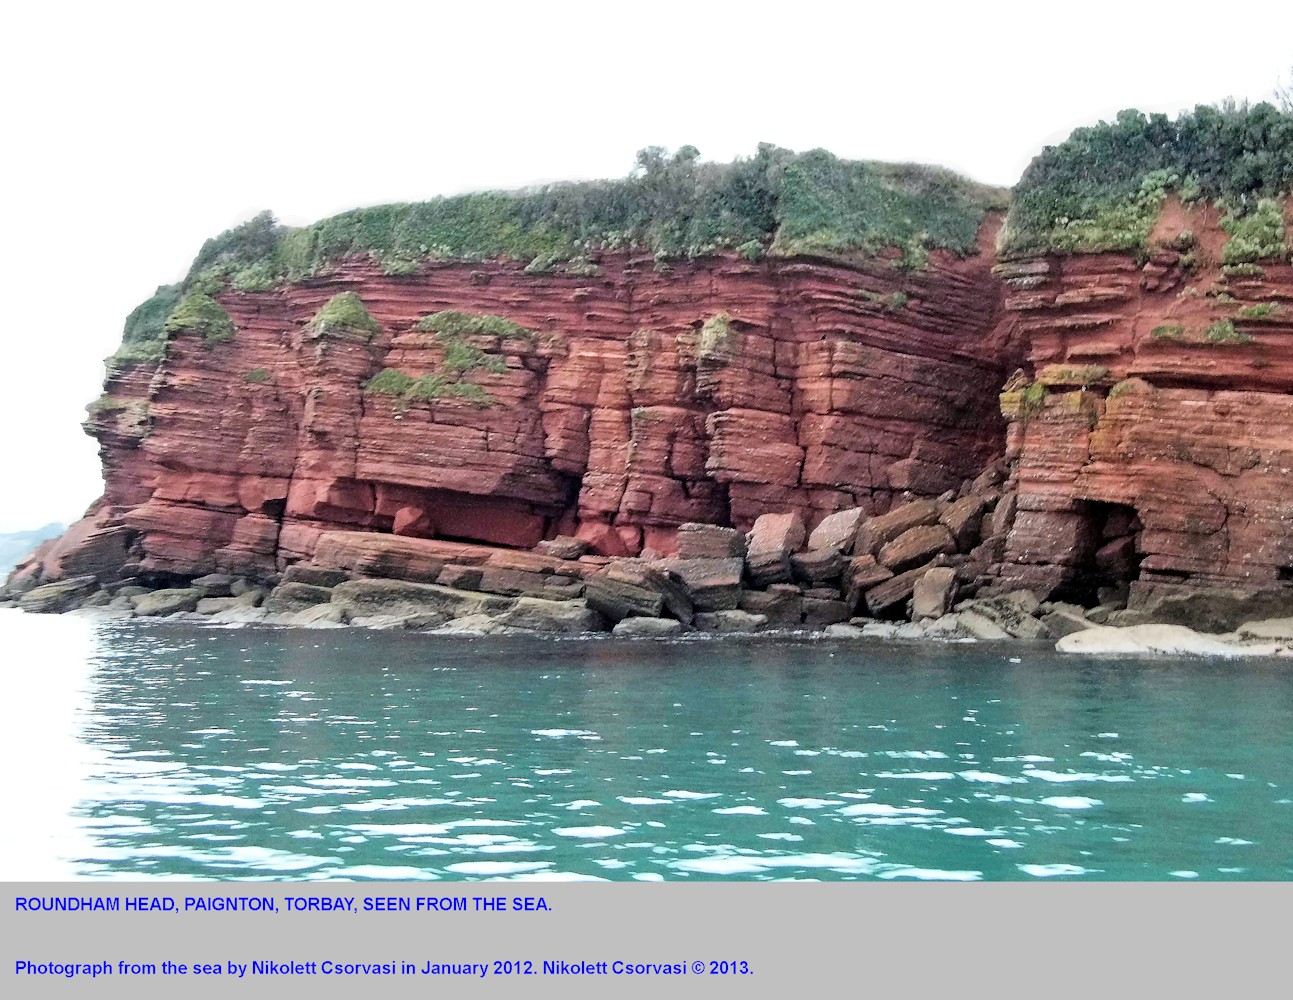 Roundham Head, seen from the sea, Paignton, Devon